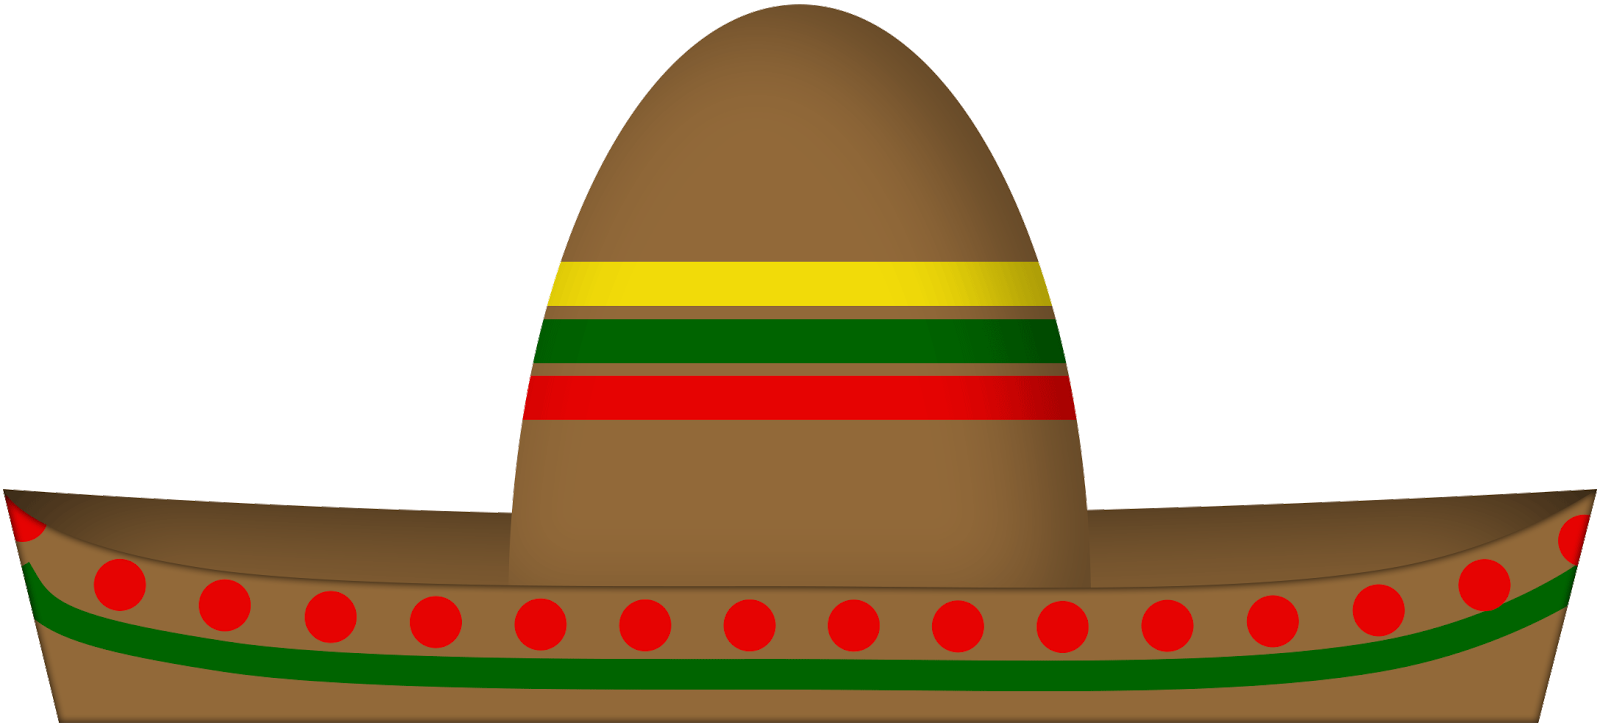 Mexican designs clip art